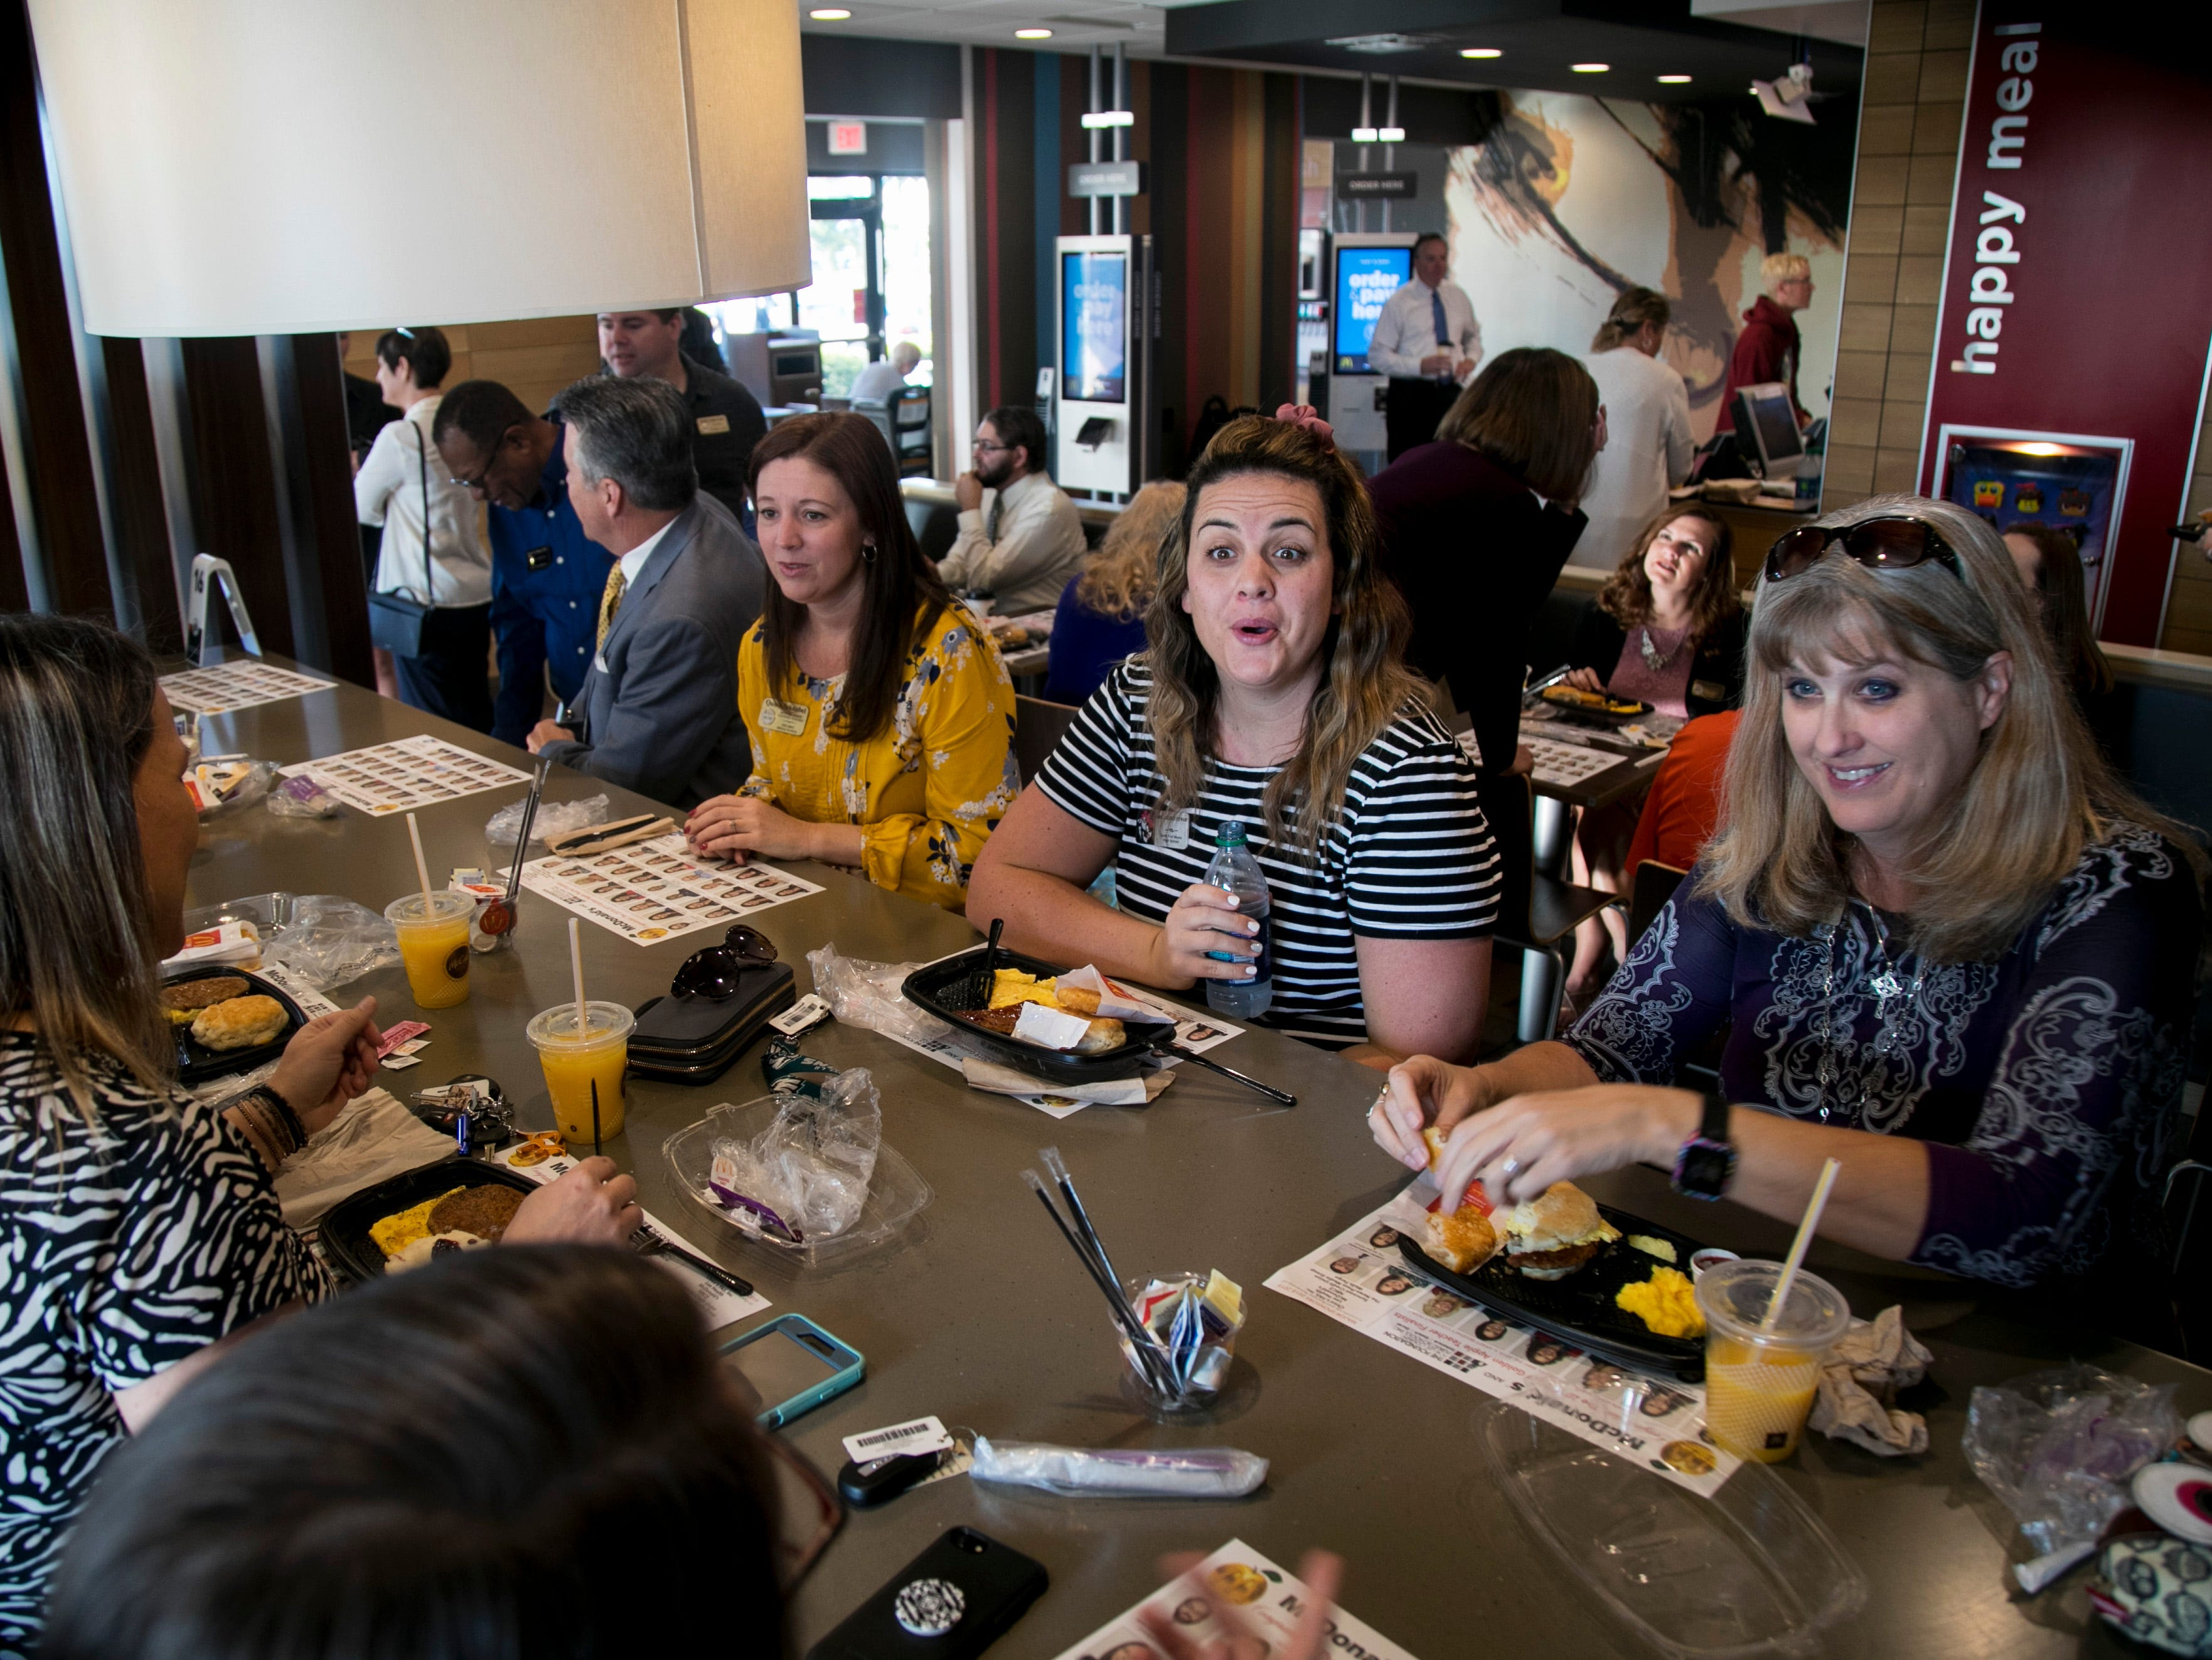 North Fort Myers High School teacher Kaleigh Stewart, center, chats with other Golden Apple finalists at the annual breakfast honoring the finalists at McDonald's on Colonial Boulevard in Fort Myers on Friday, Feb. 15, 2019. The event, hosted by the Foundation for Lee County Public Schools and McDonald's, also featured the unveiling of tray liners featuring photos of the 30 Golden Apple finalists.